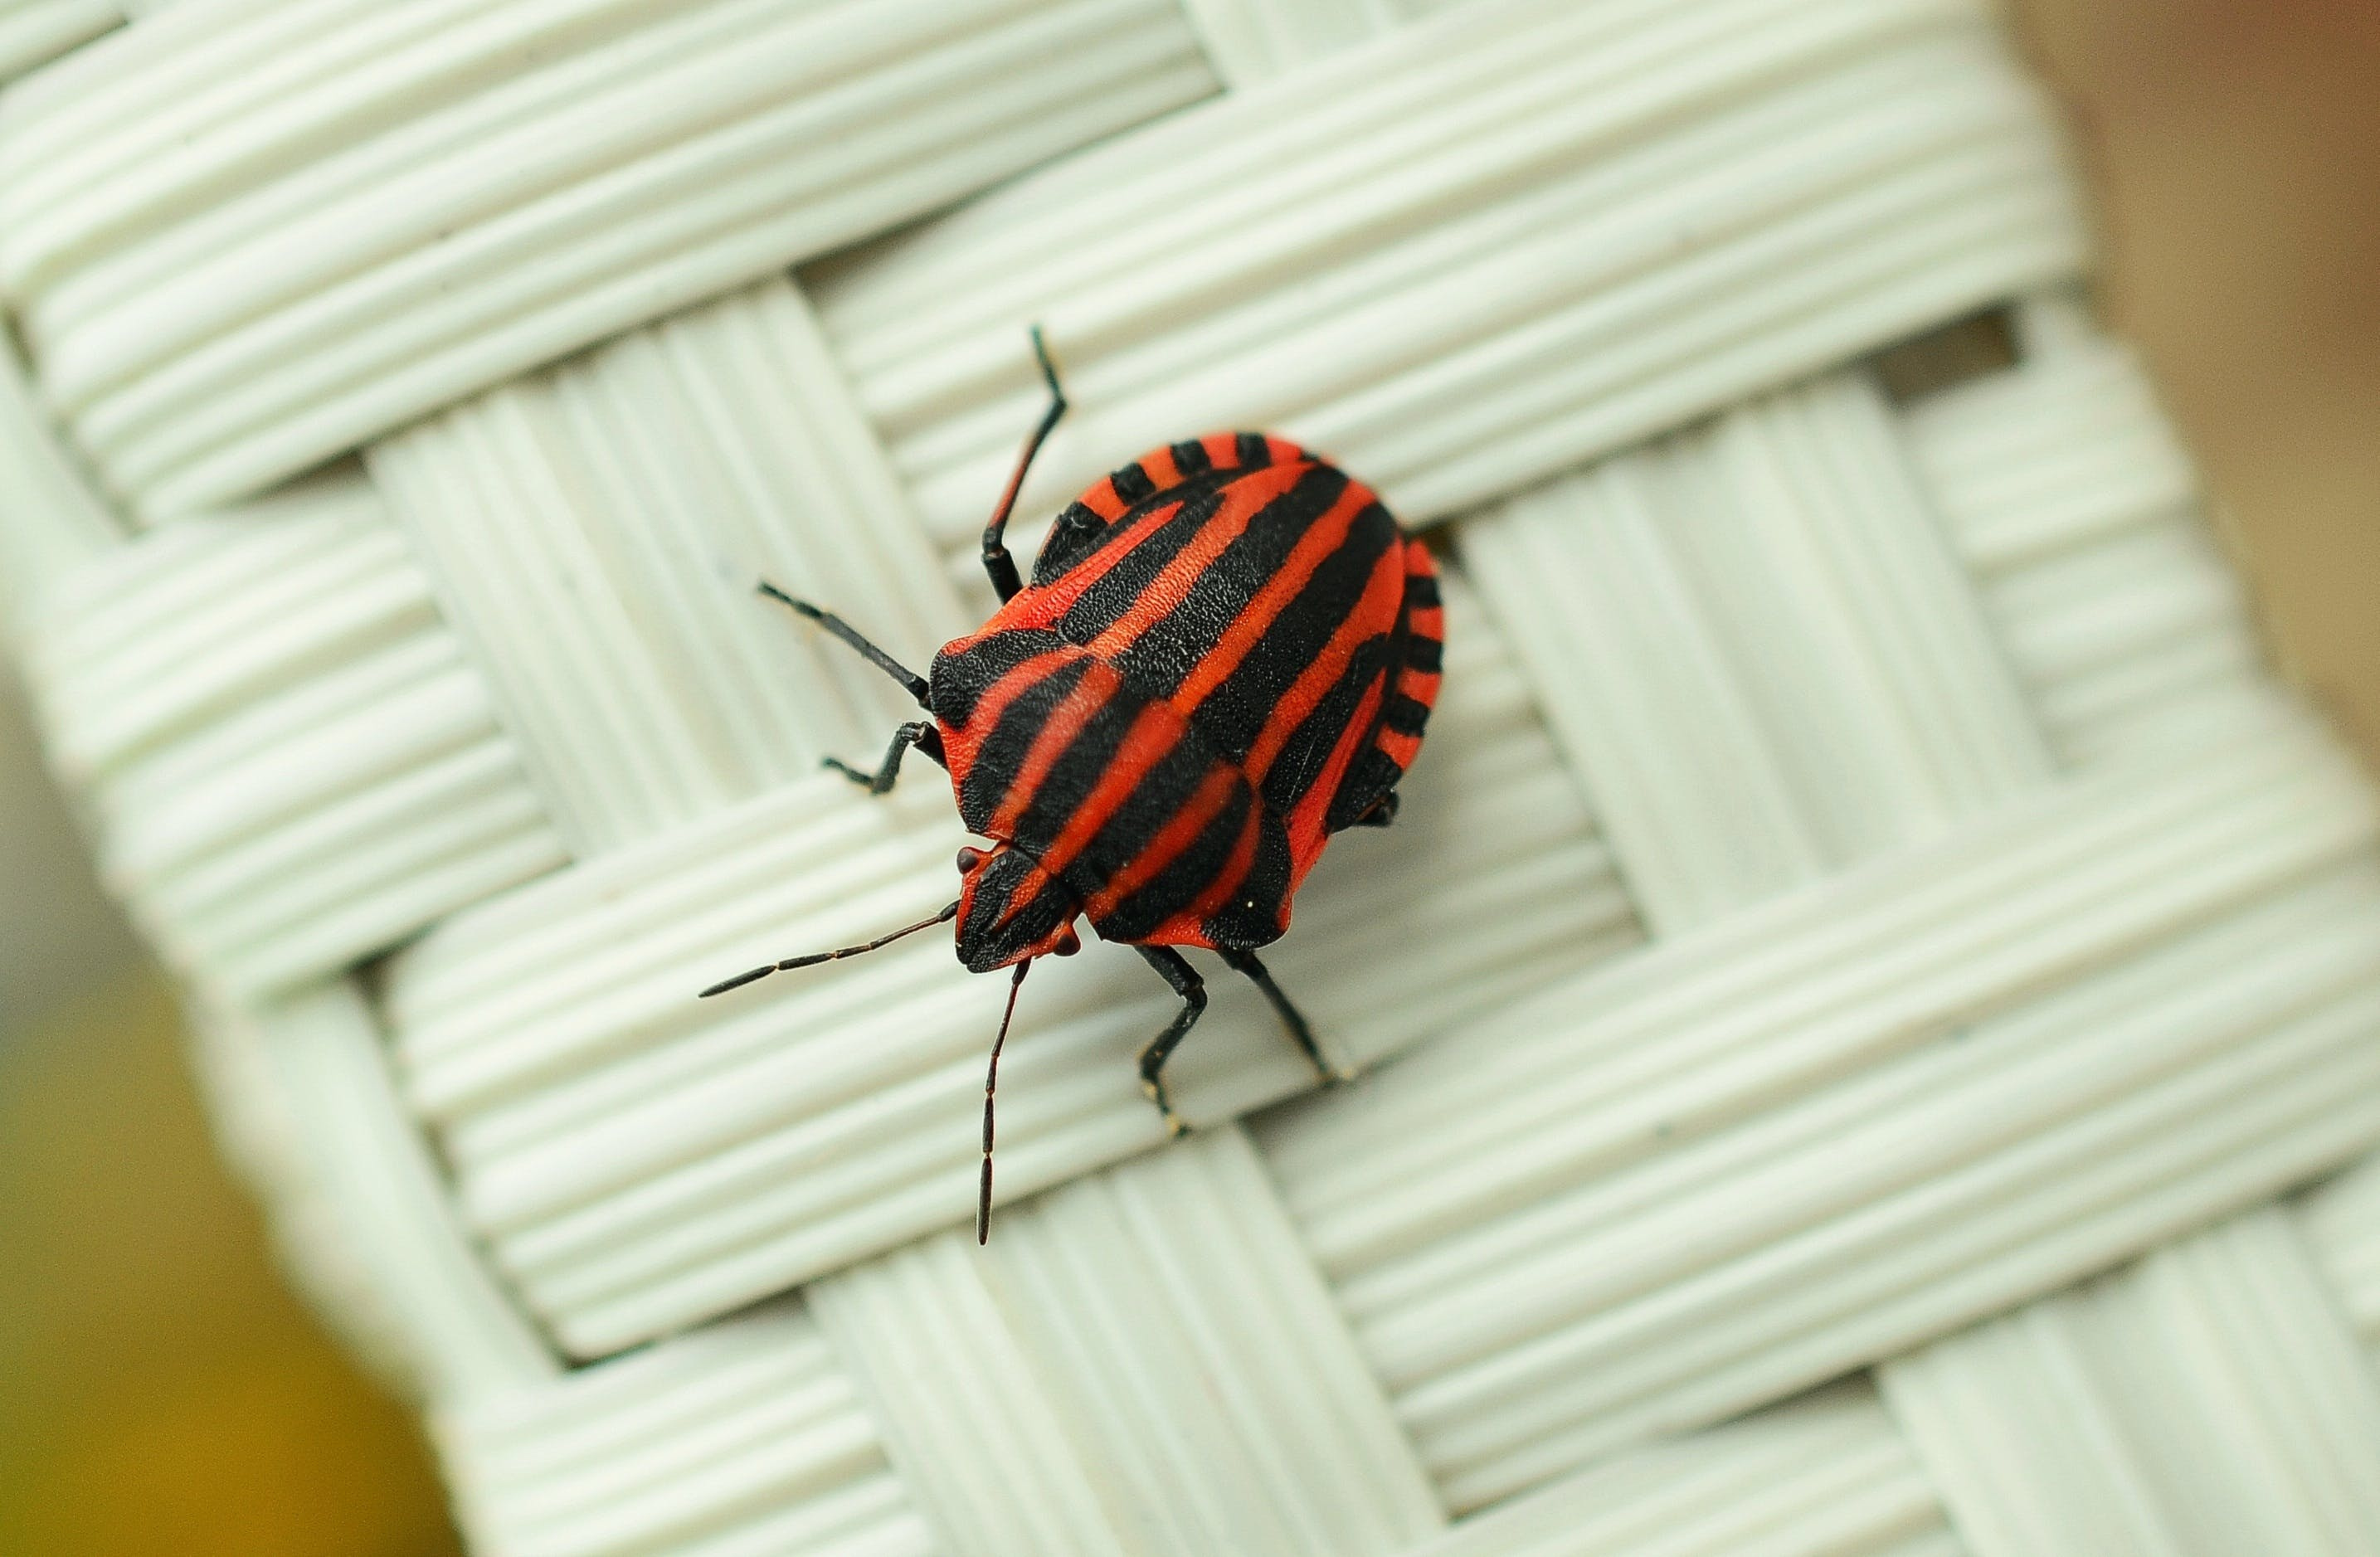 Black and Red Striped Bug on White Wicker Surface